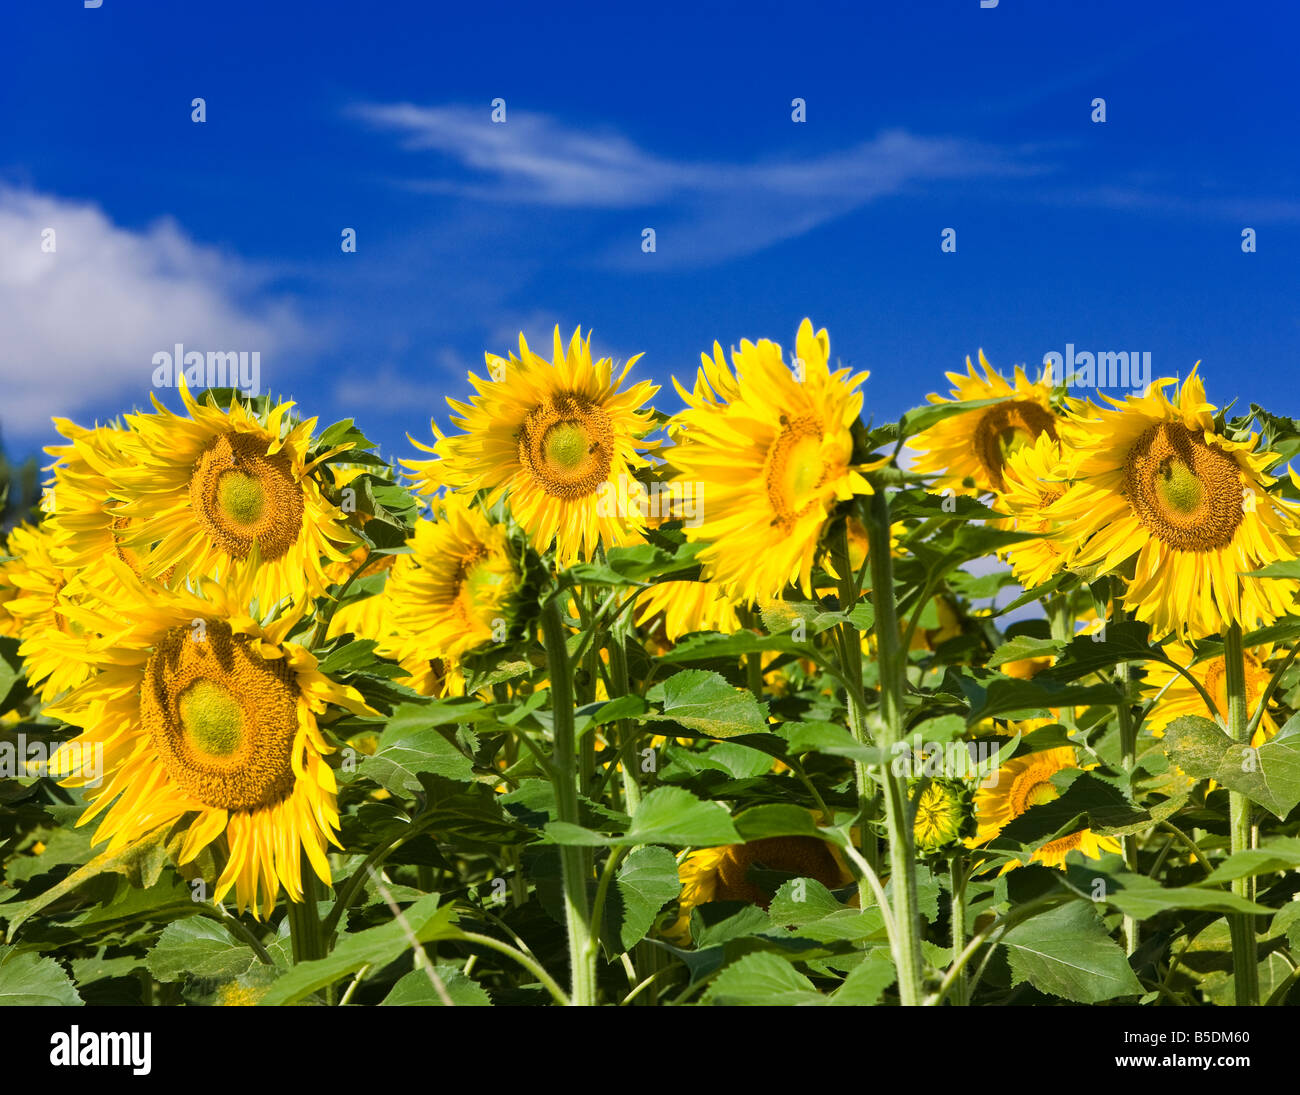 Yellow mature sunflowers against a blue sky in southern France Europe - Stock Image